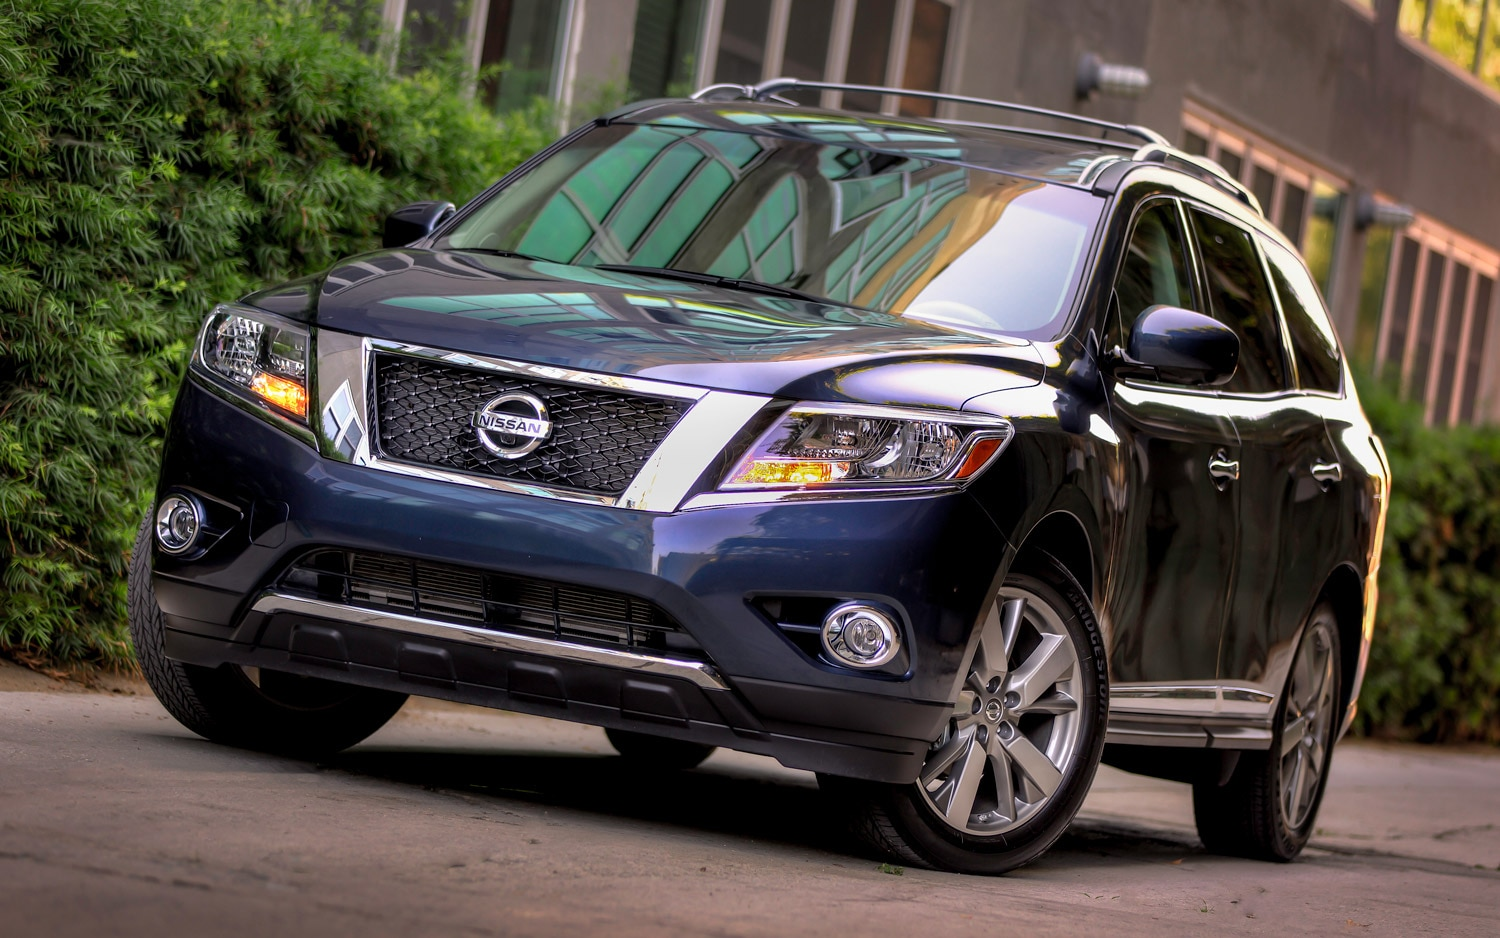 2013 Nissan Pathfinder Front In Blue